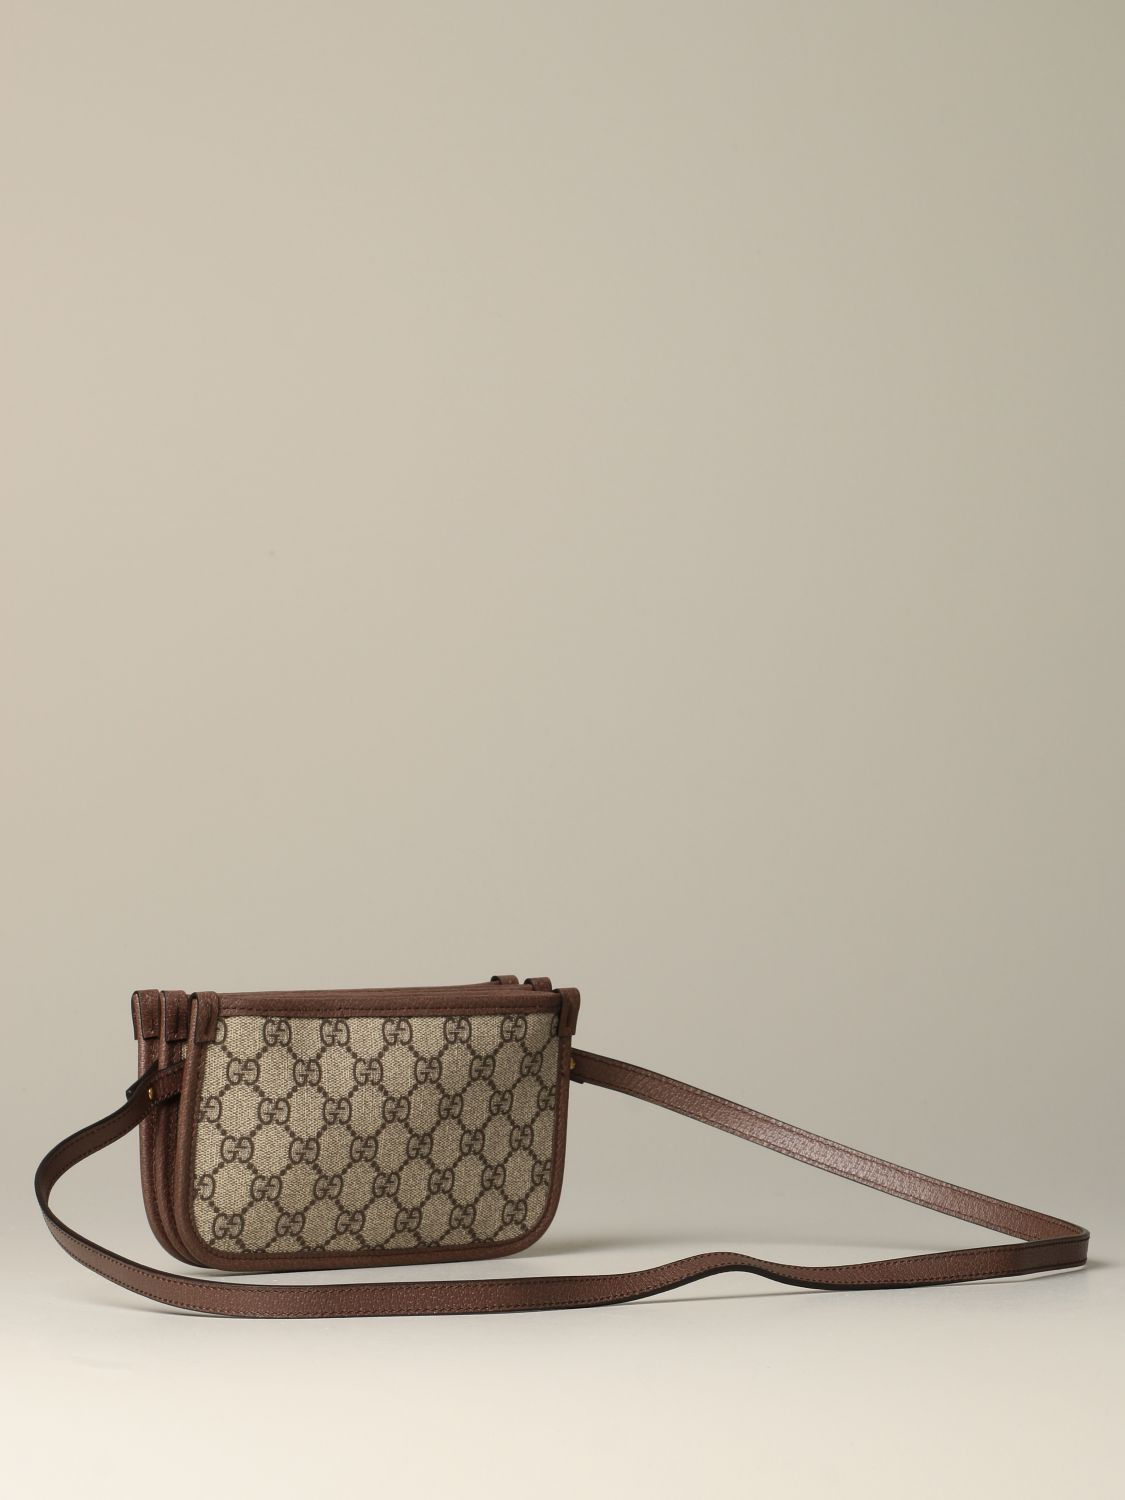 Belt bag Gucci: Ophidia Gucci GG Supreme shoulder bag beige 2